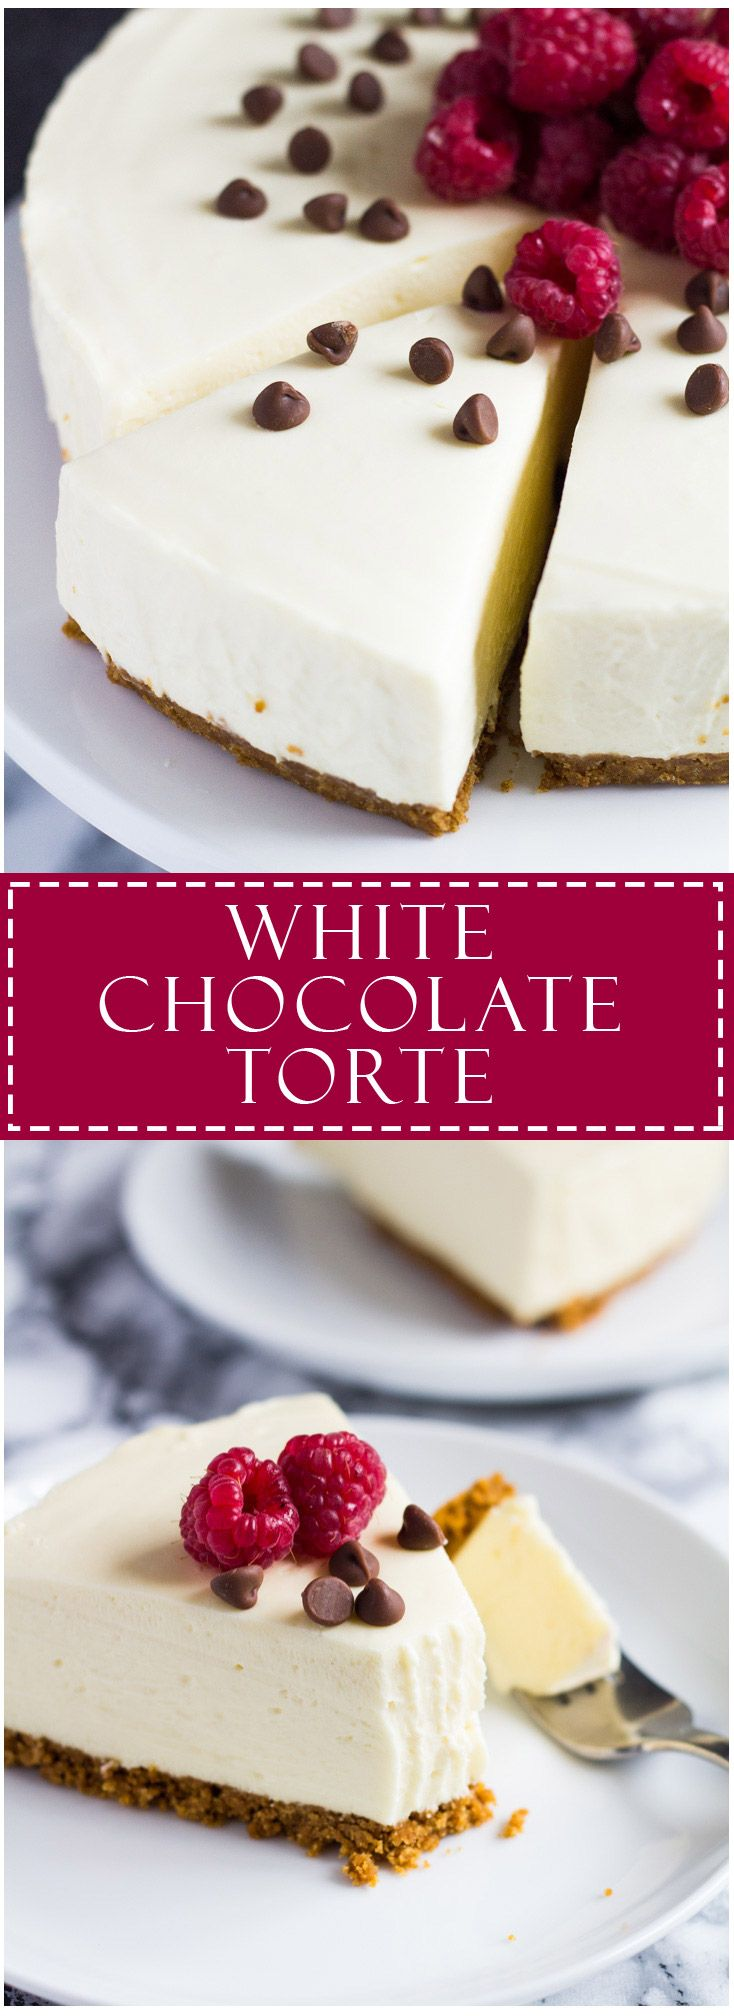 White Chocolate Torte | Marsha's Baking Addiction